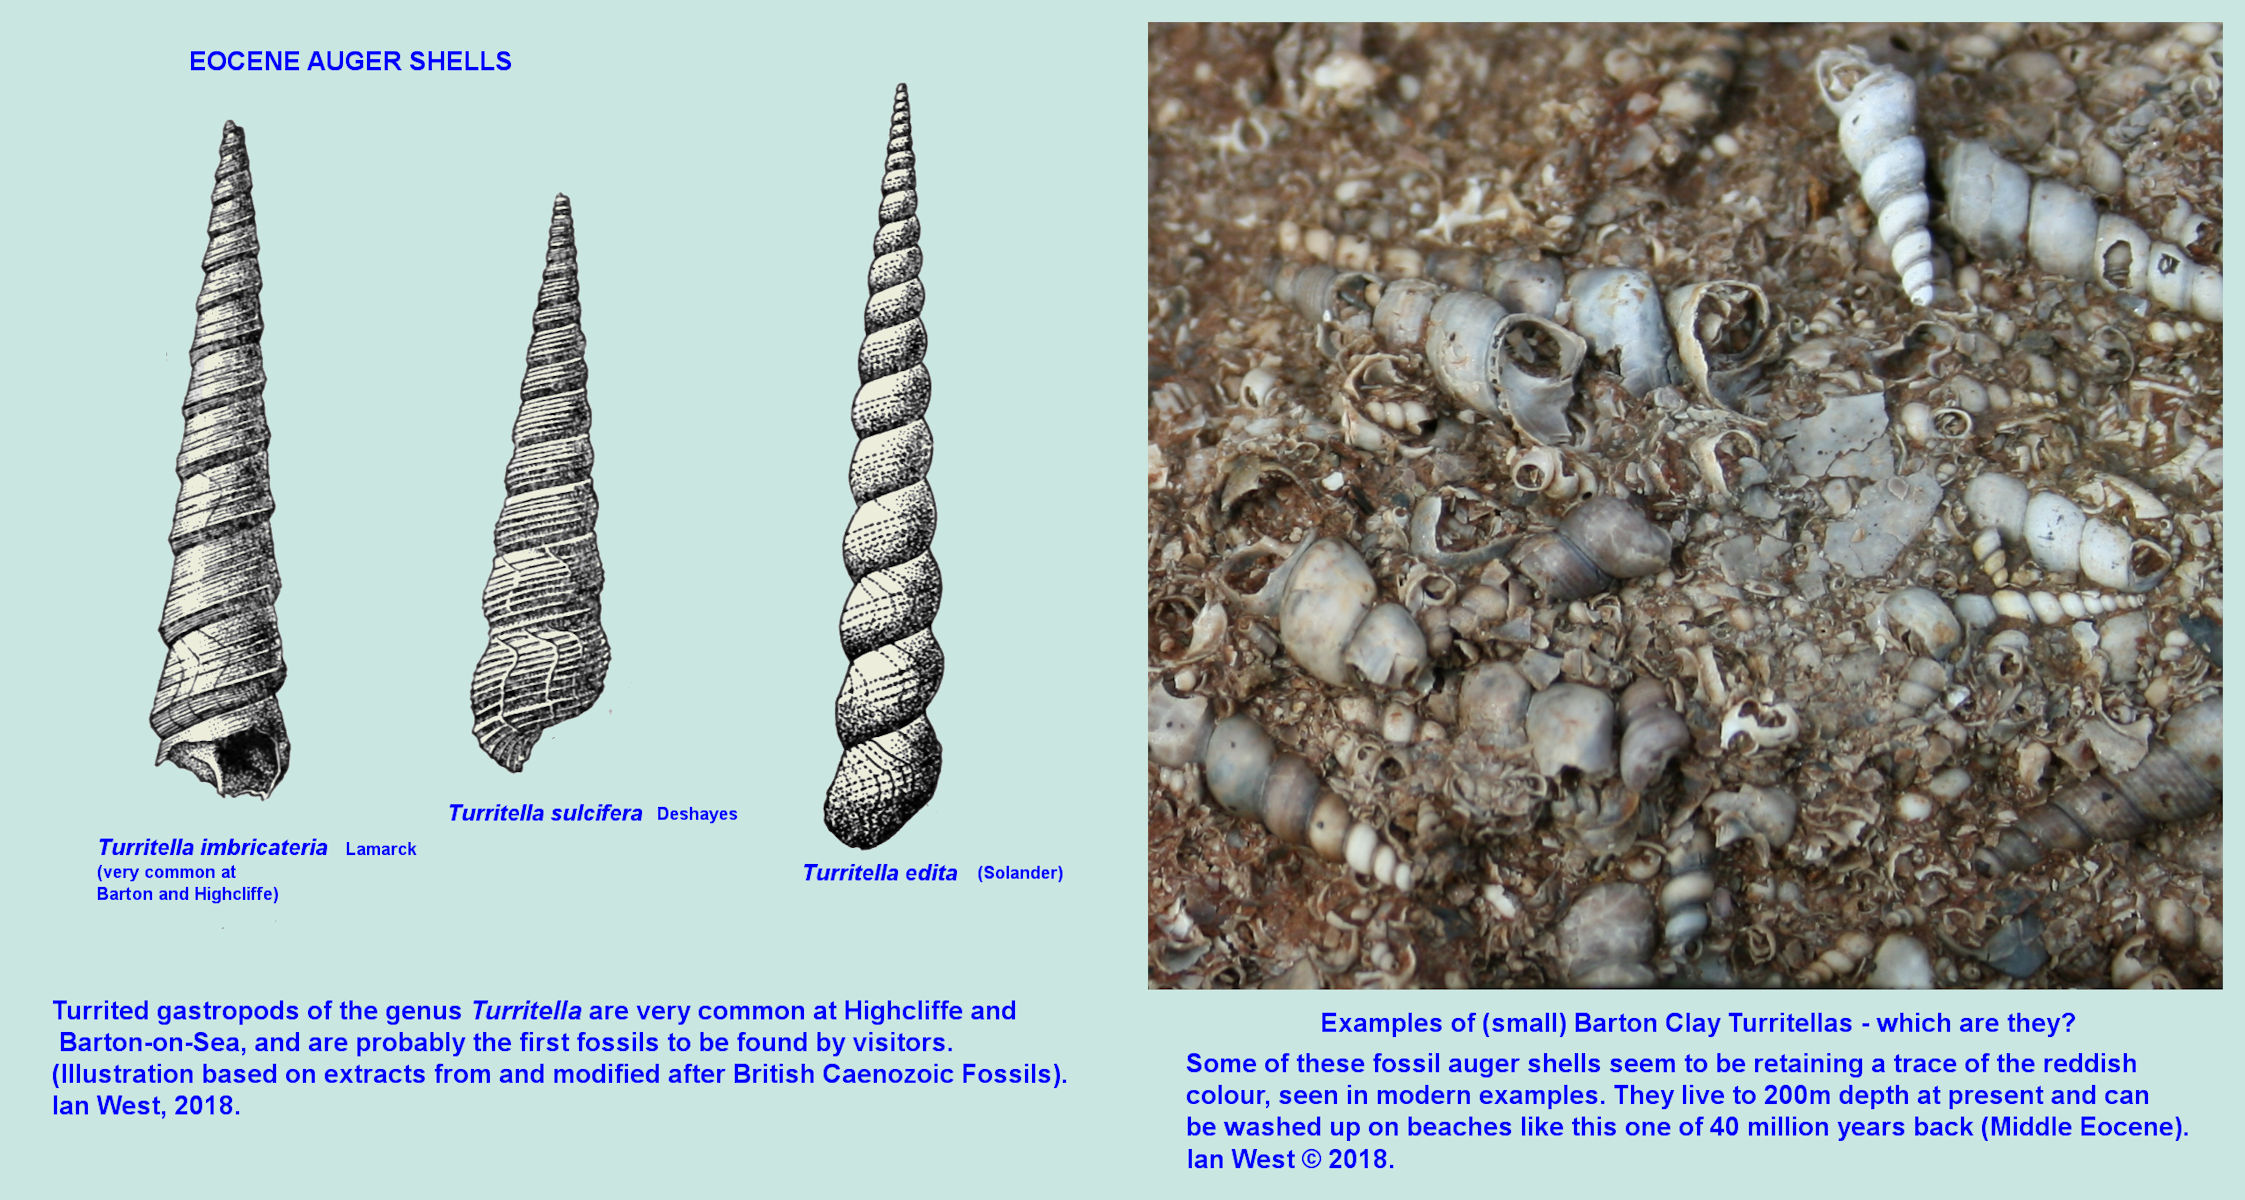 The fossil Turritella, auger shells of the Eocene Barton Clay Formation at Barton-on-Sea, Hampshire, southern England